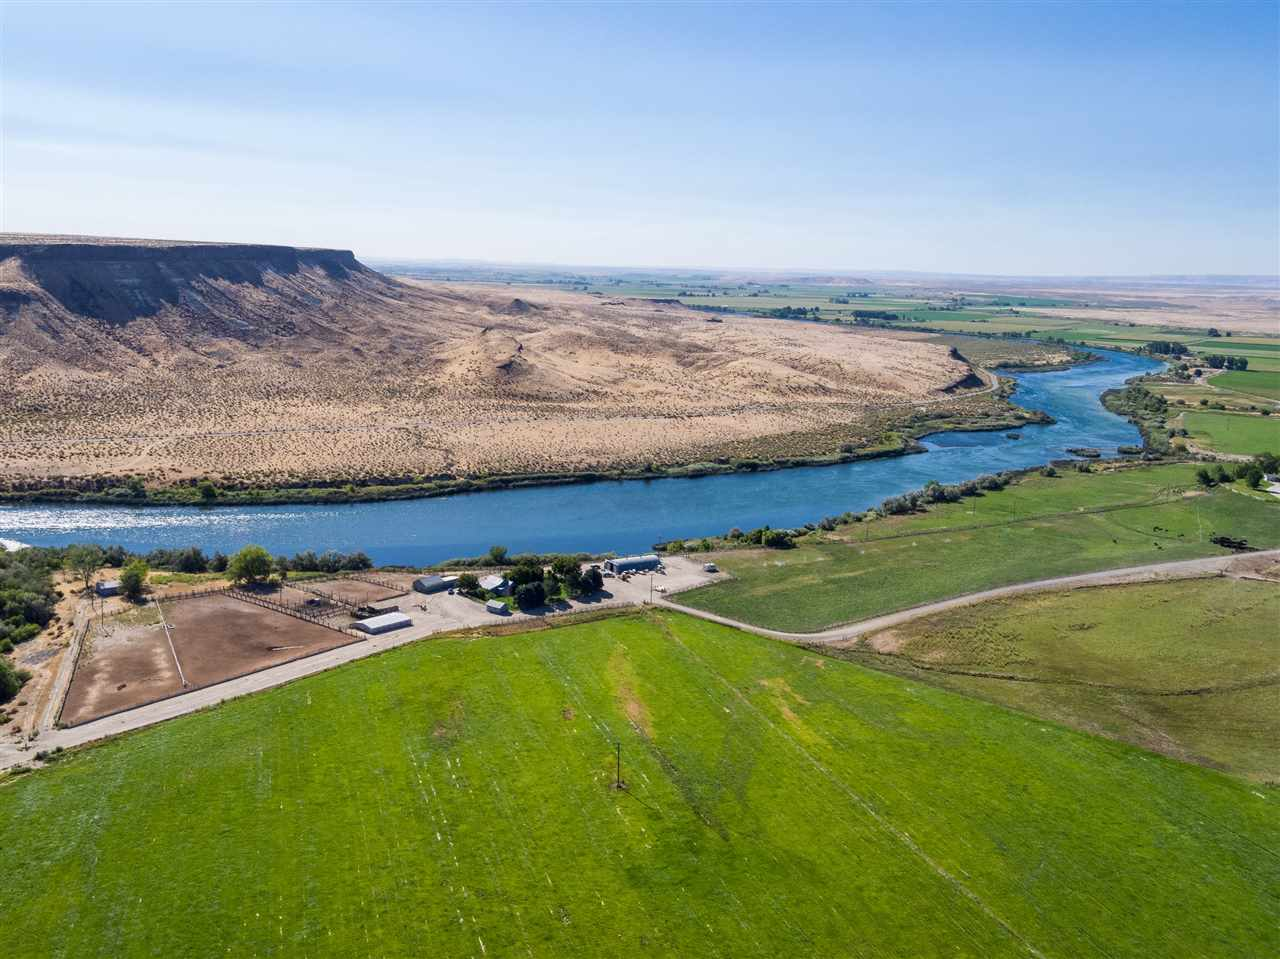 Farm / Ranch for Sale at Bonus Cove Farm Grand View, Idaho 83624